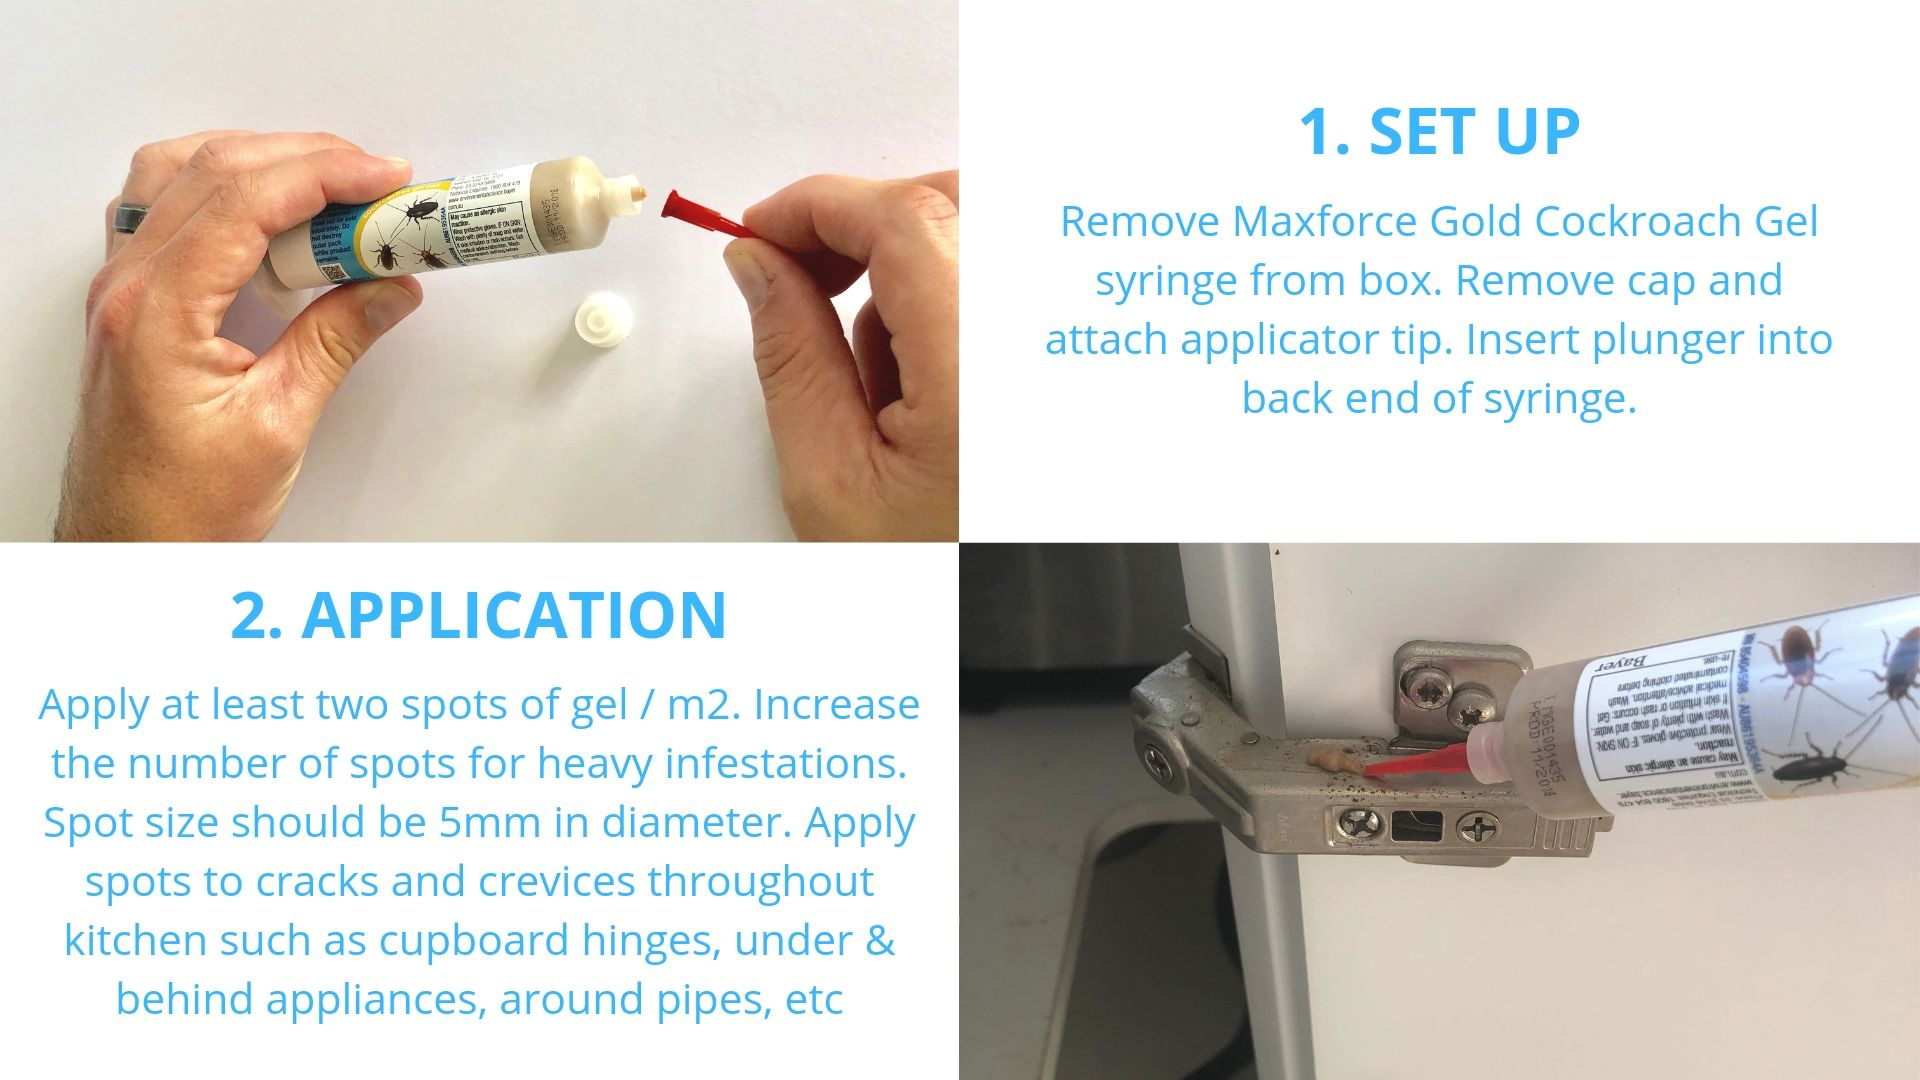 How to use Maxforce Gold Cockroach Gel